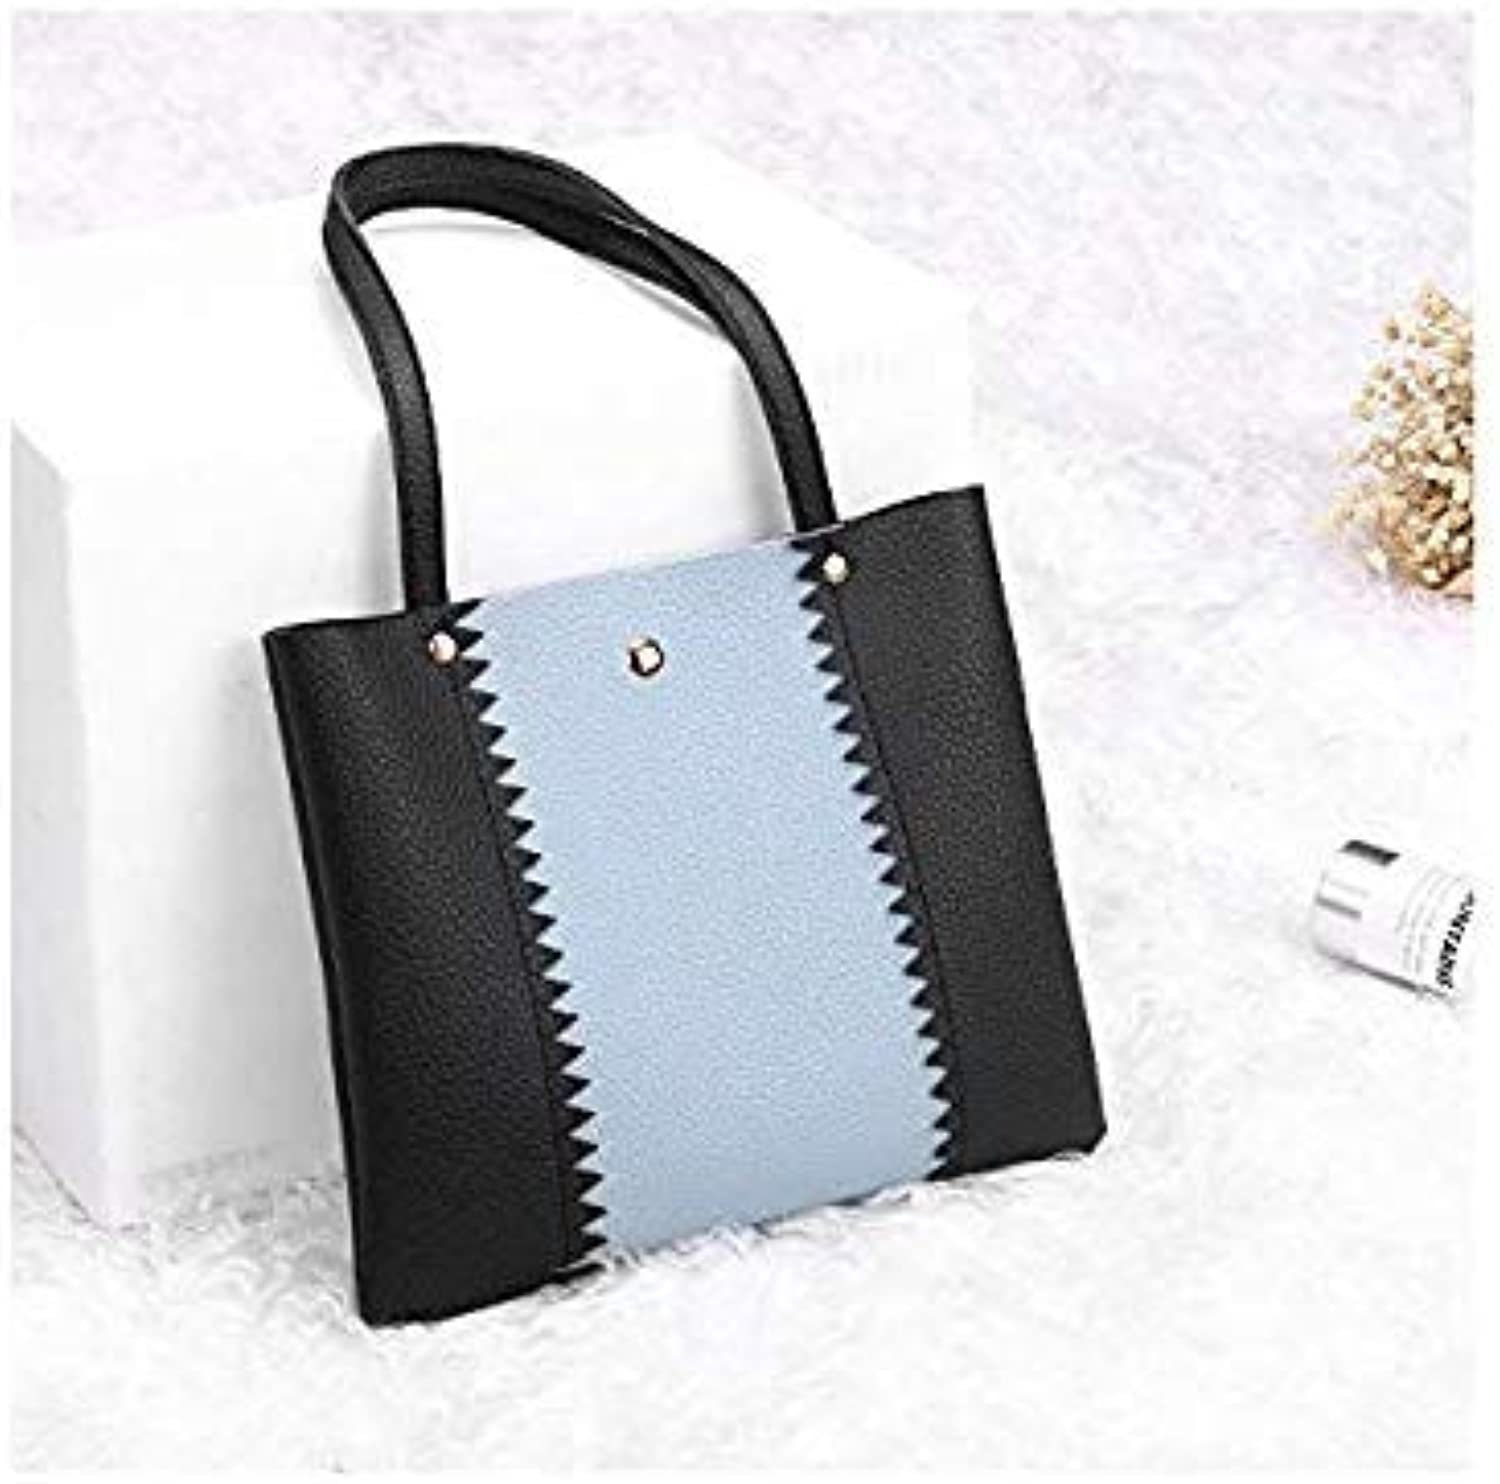 Bloomerang Billtera PU Leather Women Tote Bag Casual Style Female Hand Bag 4 colors Cheap Patchwork Ladies Handbags Can Drop Shopping color Black